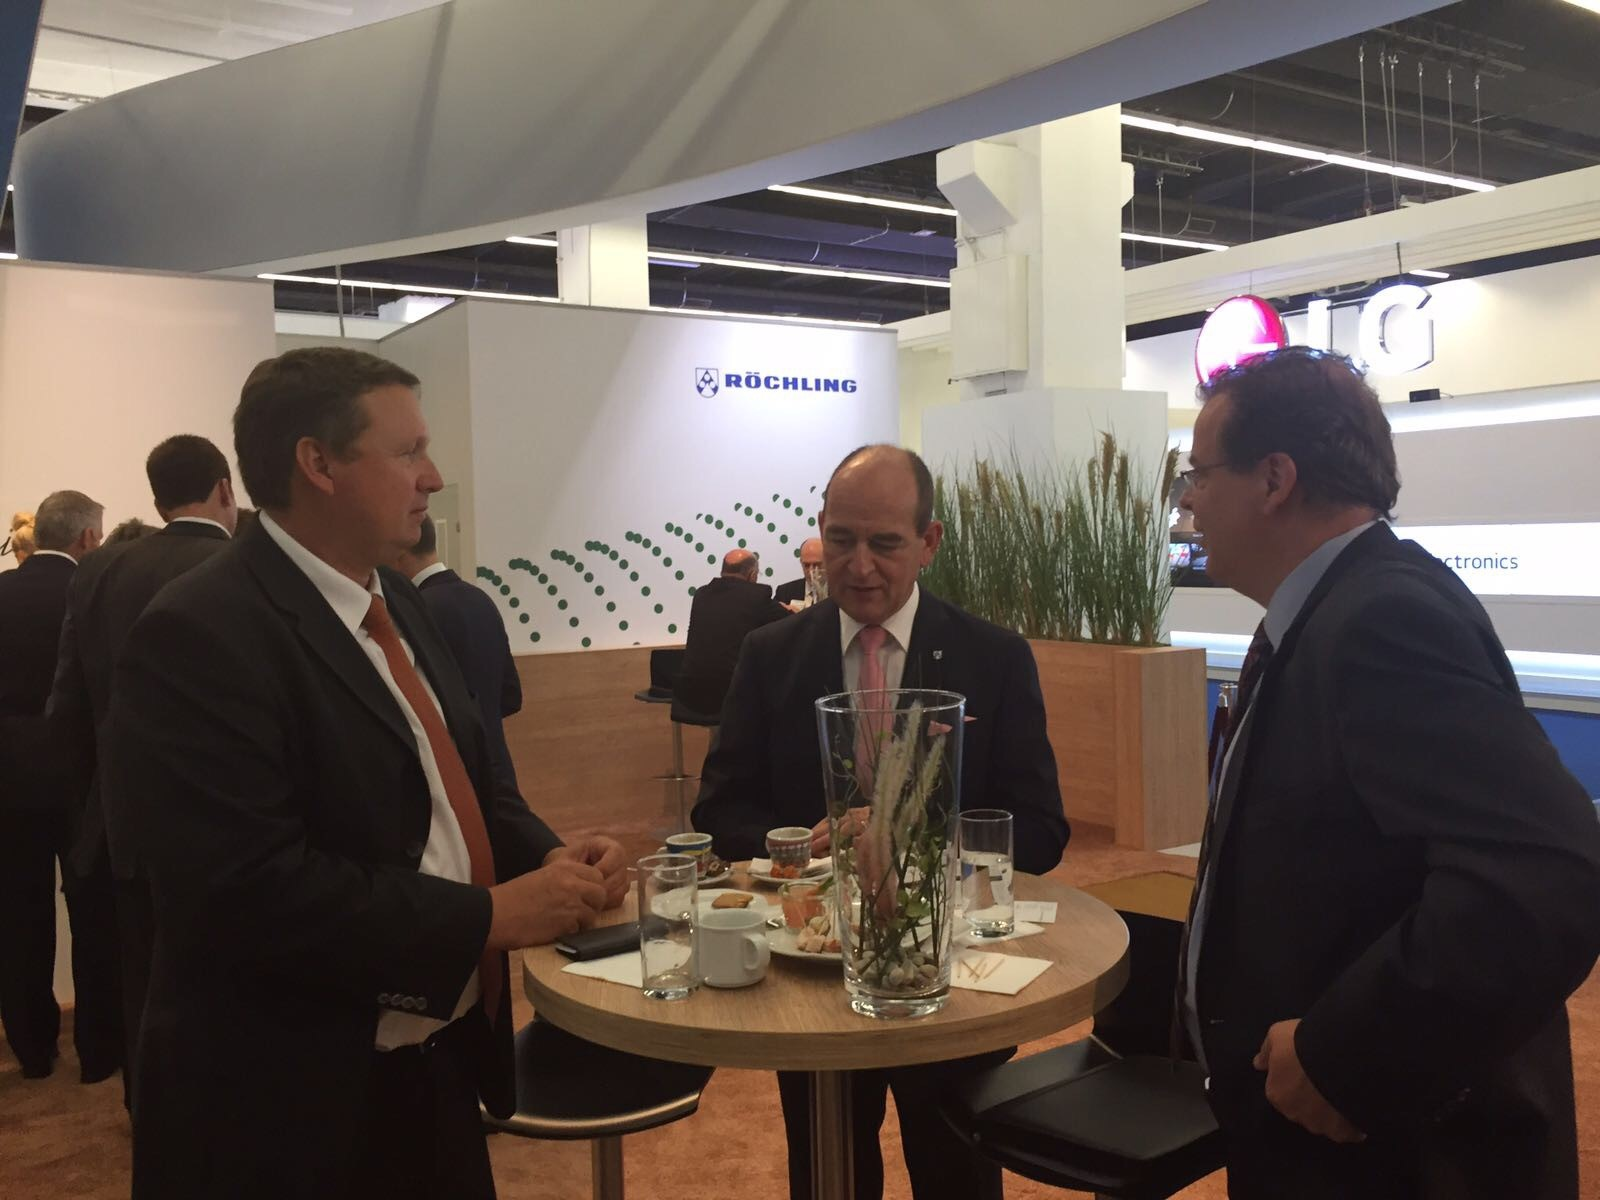 Erwin Doll, CEO from Röchling and Wolfgang Doell, President and Managing Director Europe from LIASE Group.